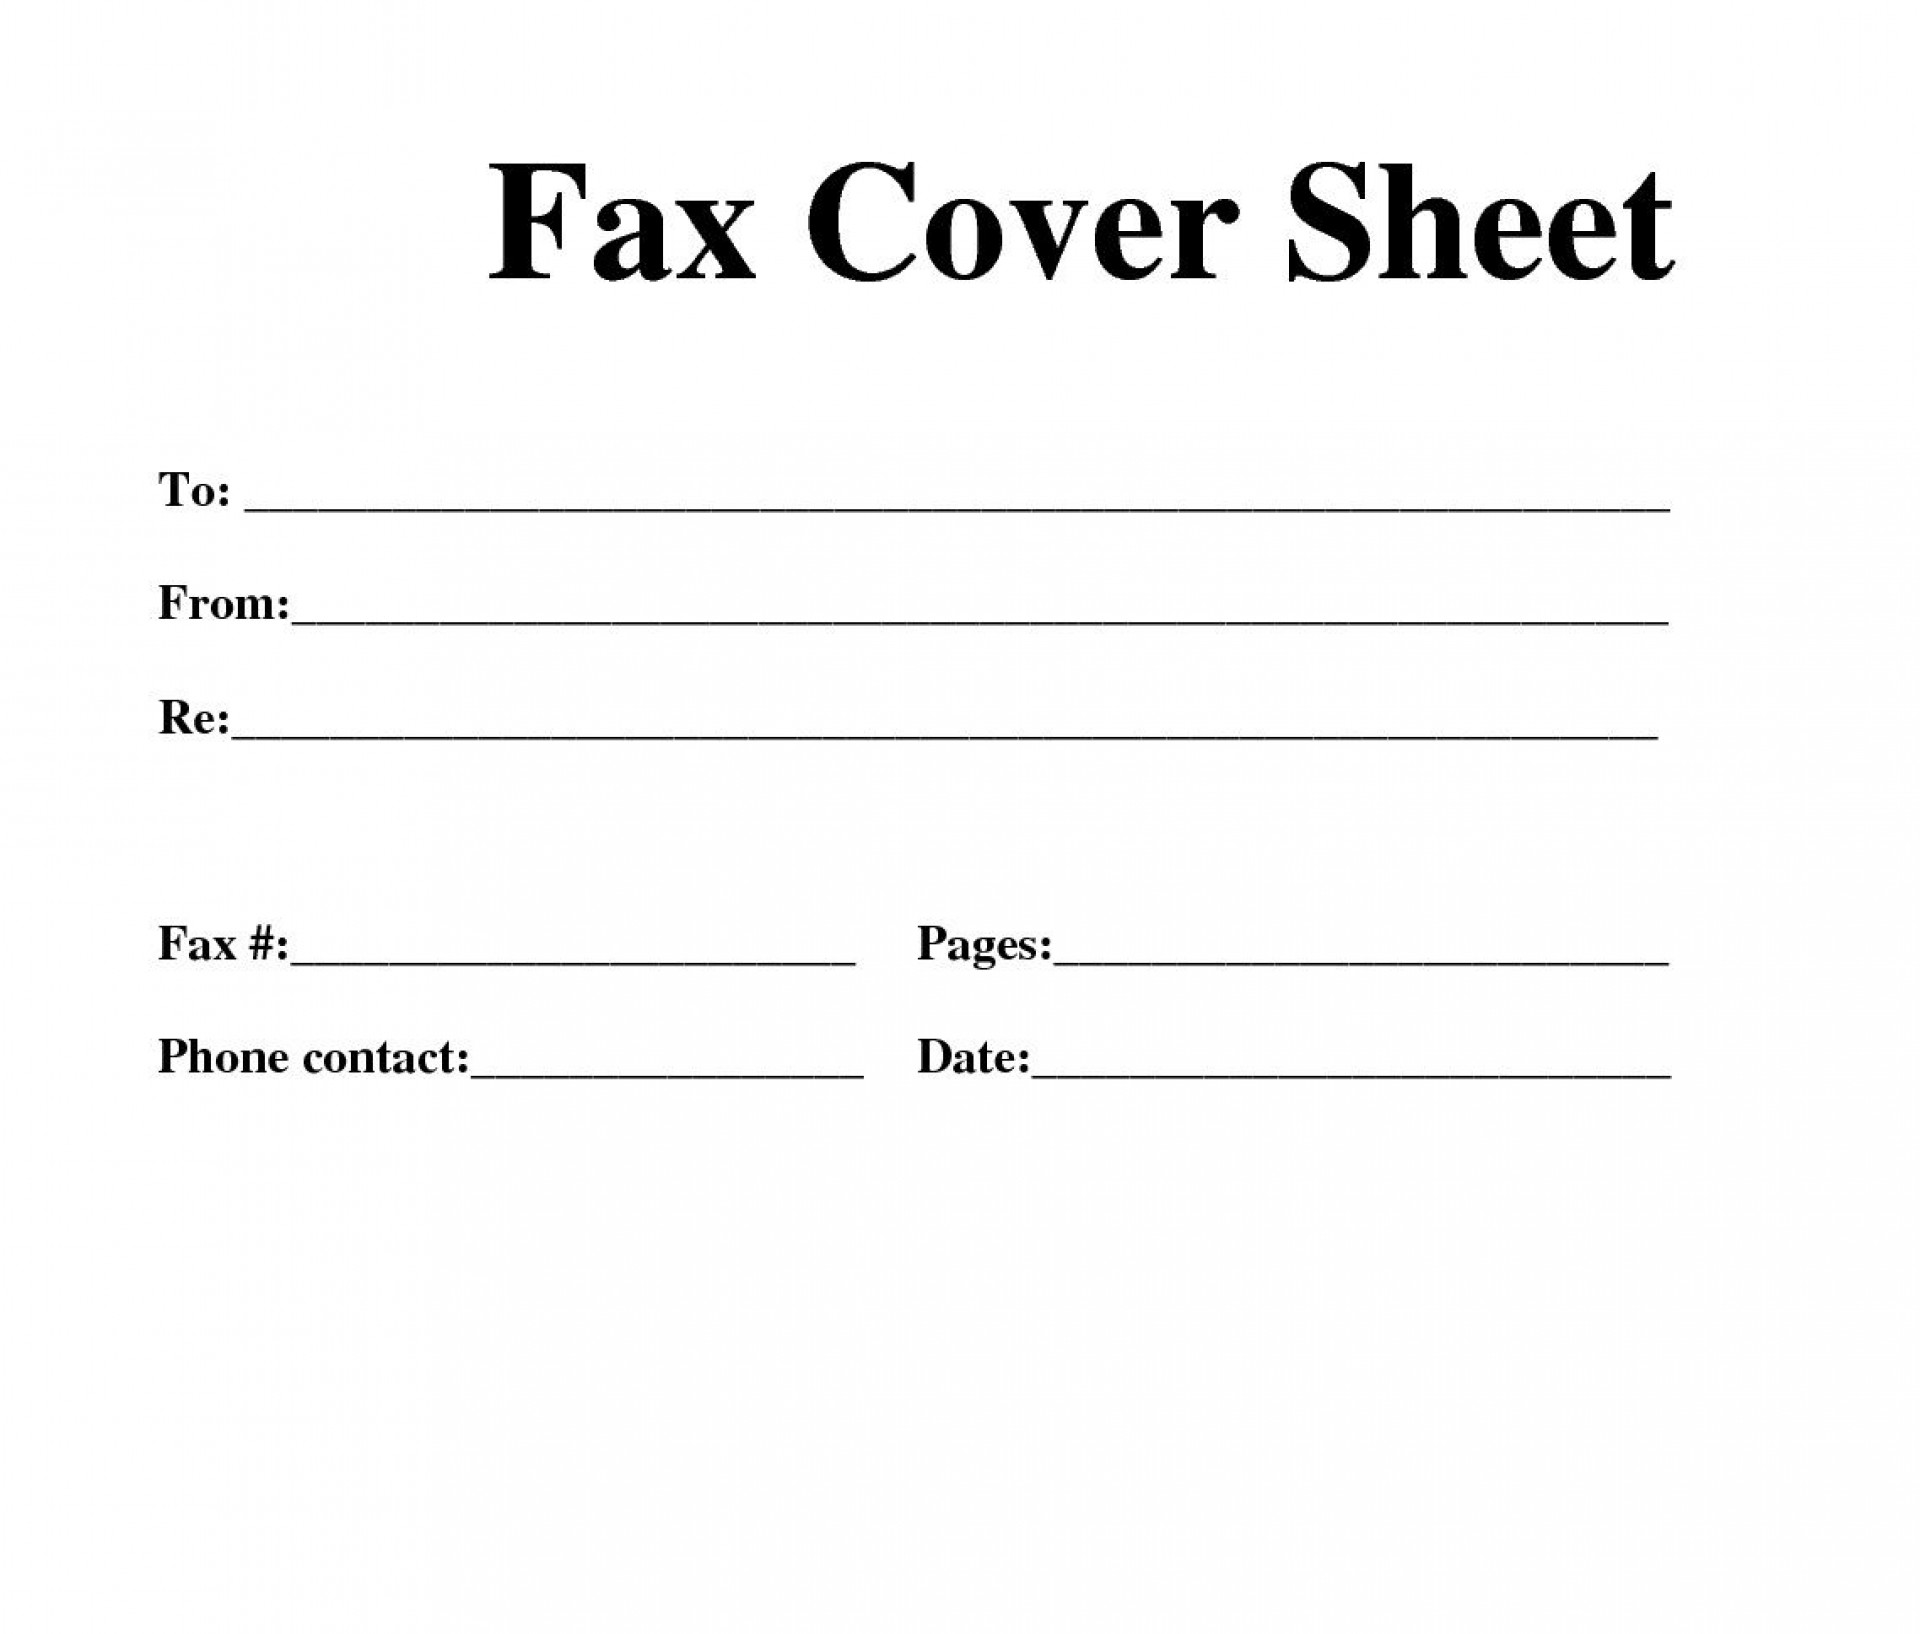 002 Beautiful Fax Template Microsoft Word Highest Clarity  Cover Sheet 2010 Letter Busines1920